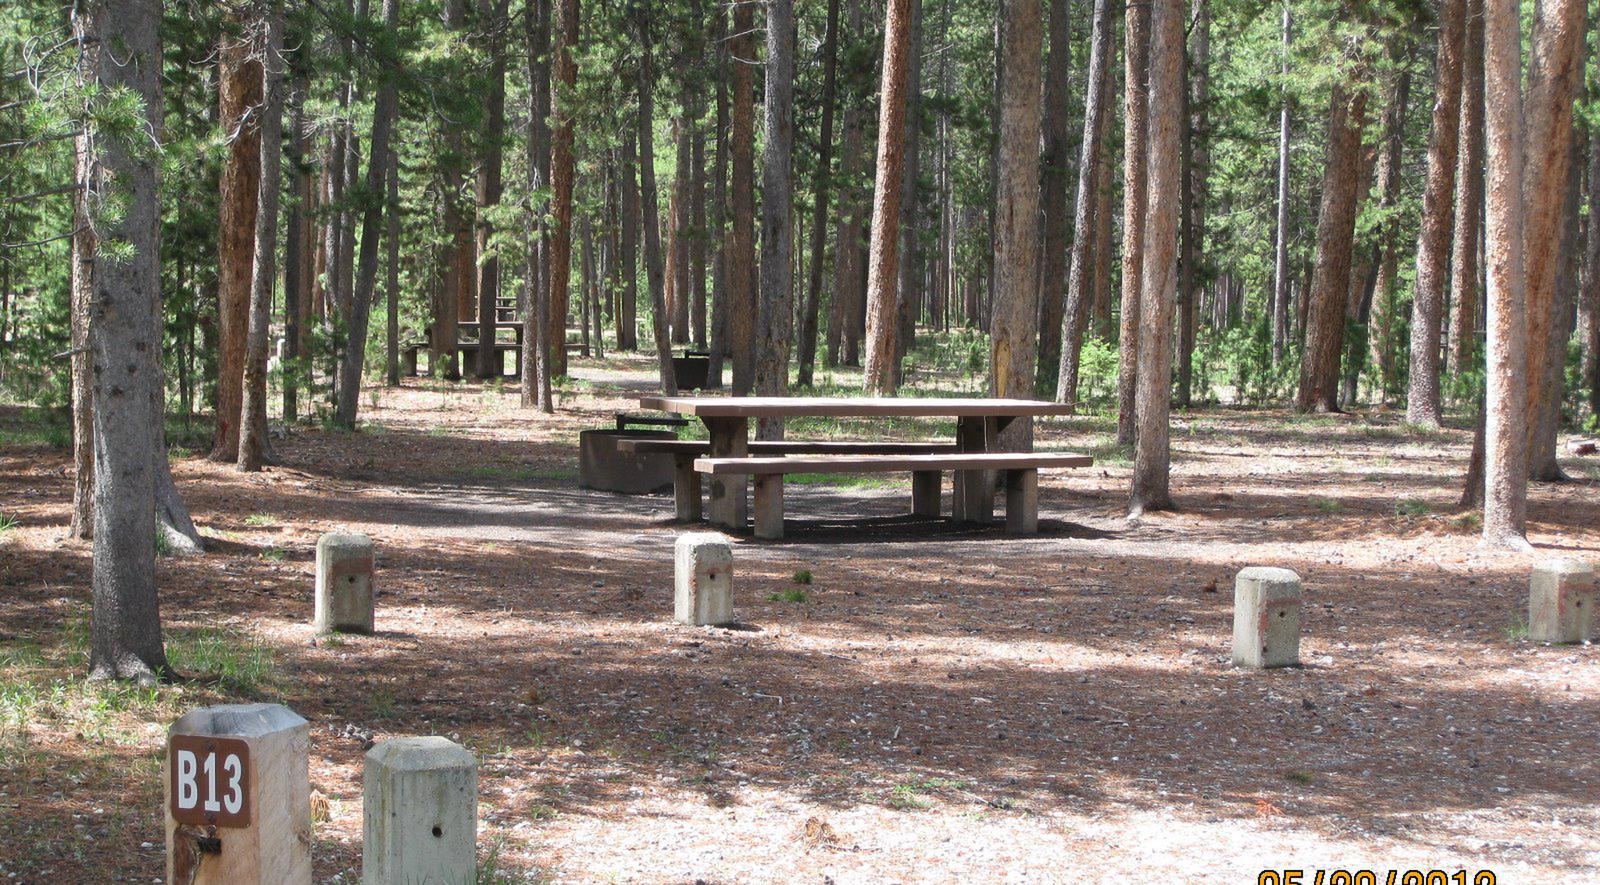 Site B13, surrounded by pine trees, picnic table & fire ringSite B13